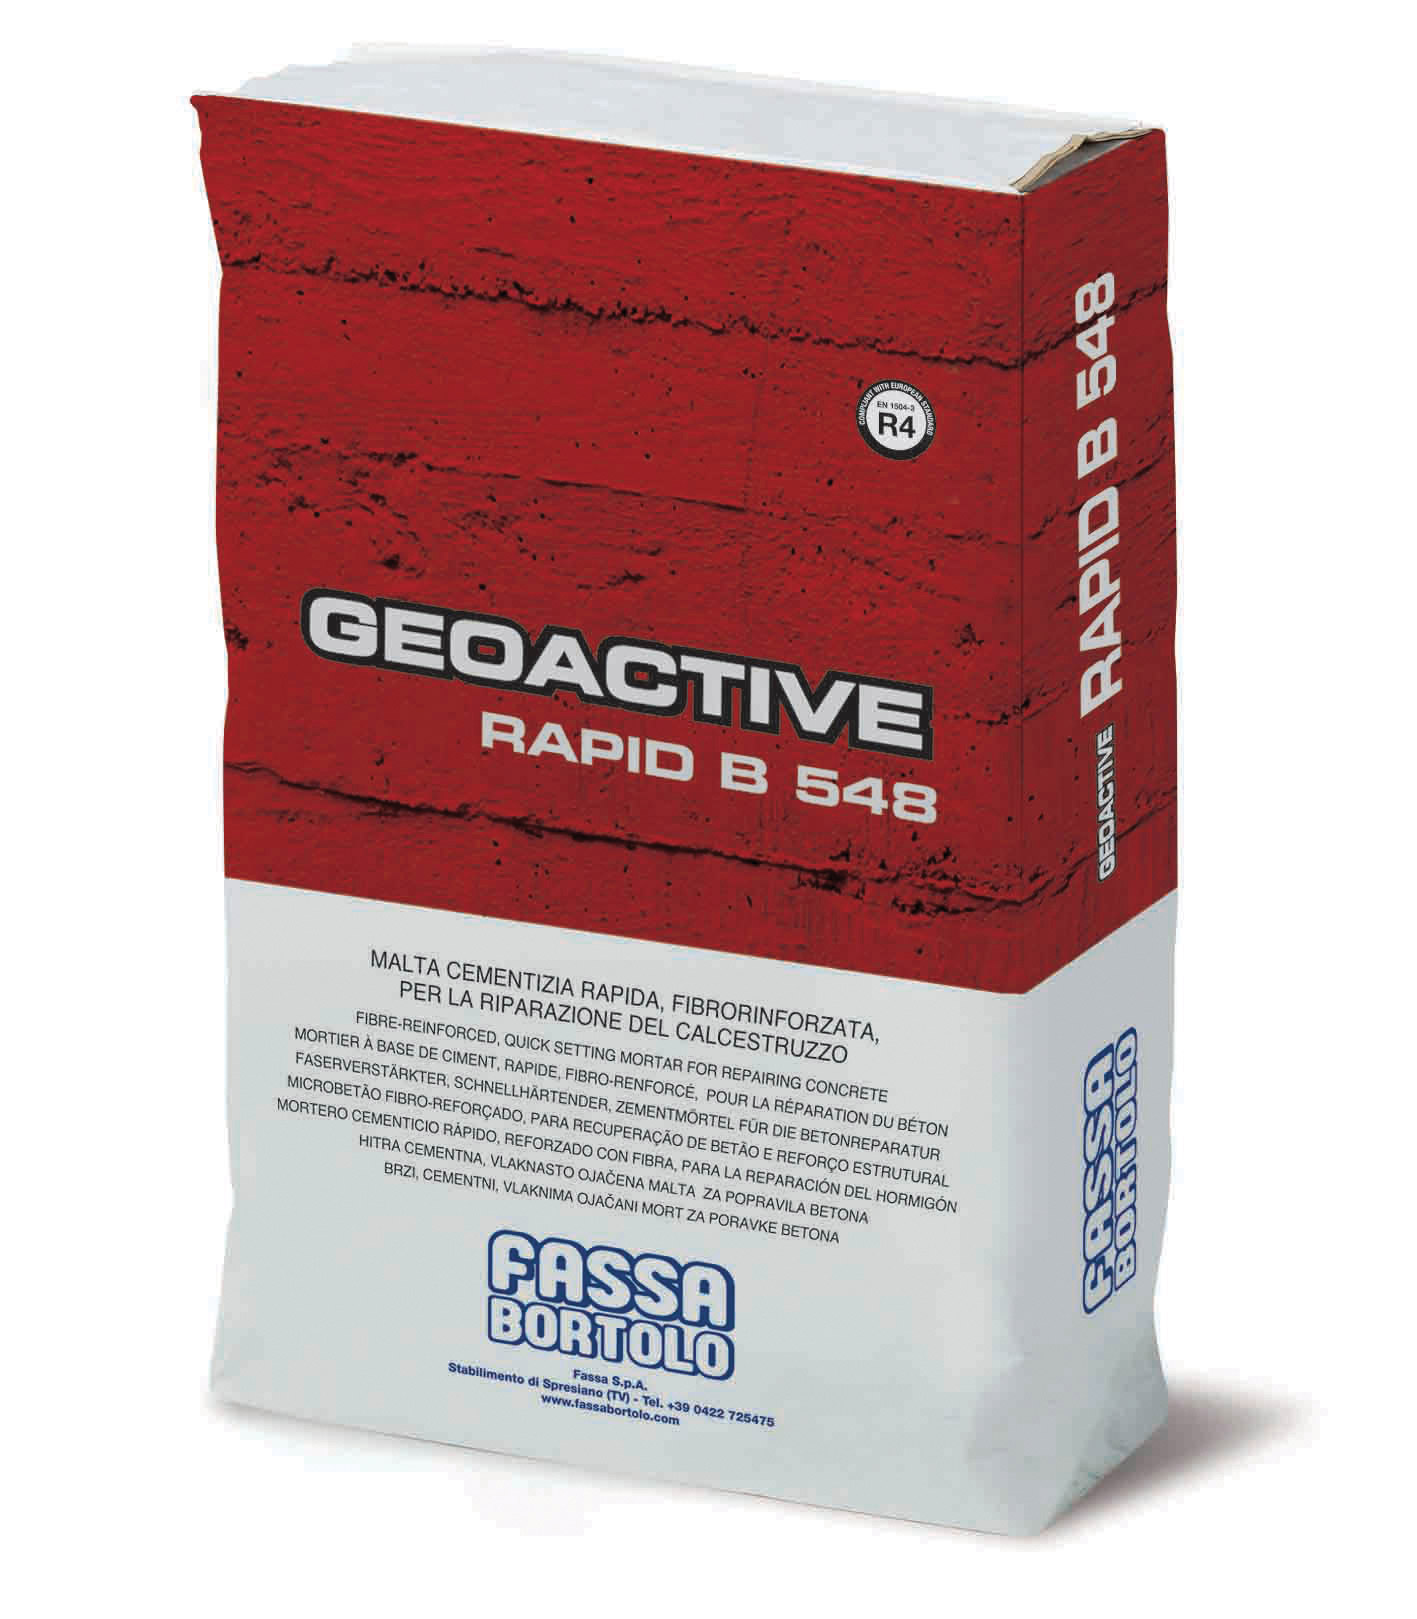 GEOACTIVE RAPID B 548